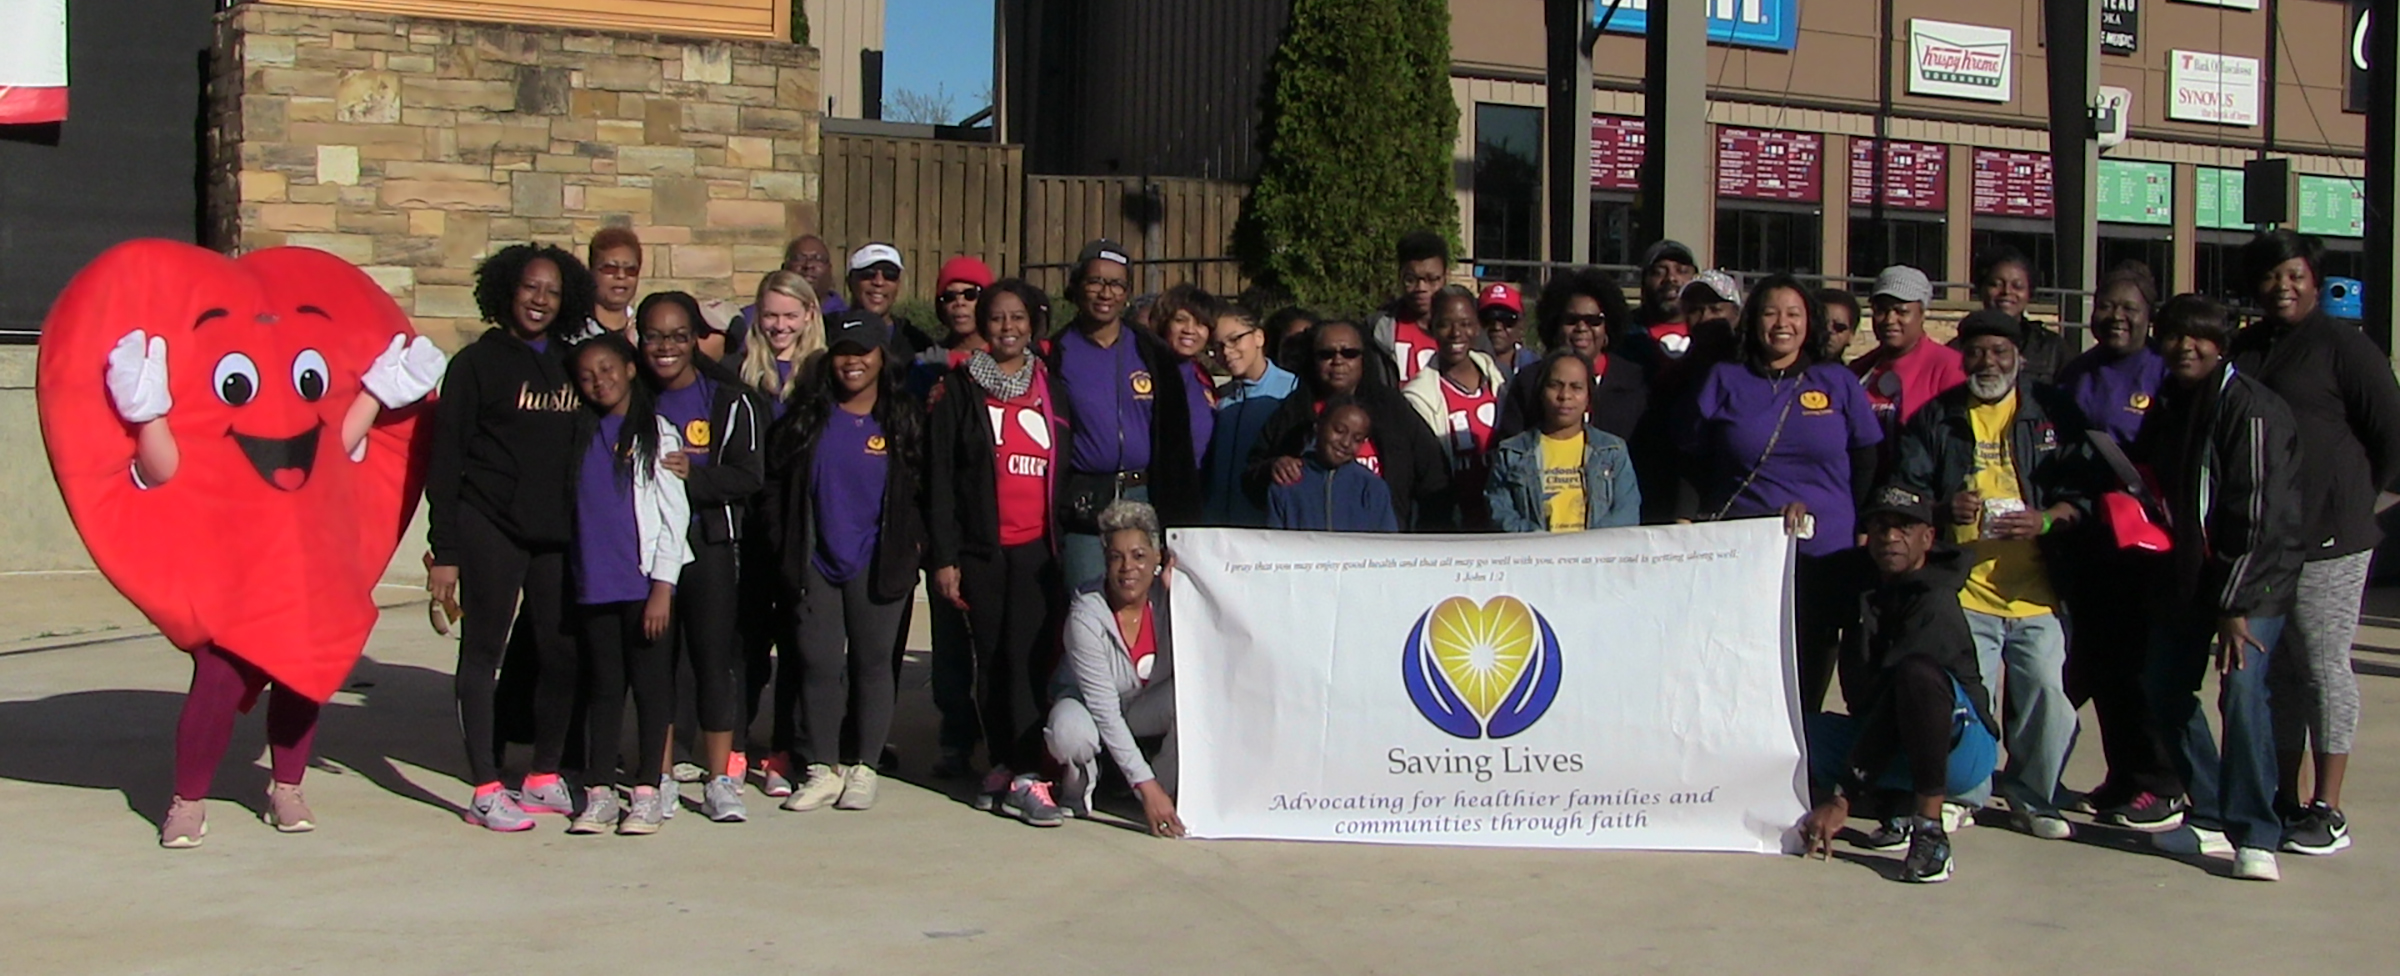 Saving Lives church members and the CCPB team pose for a group shot at the 2018 Heart Walk event.